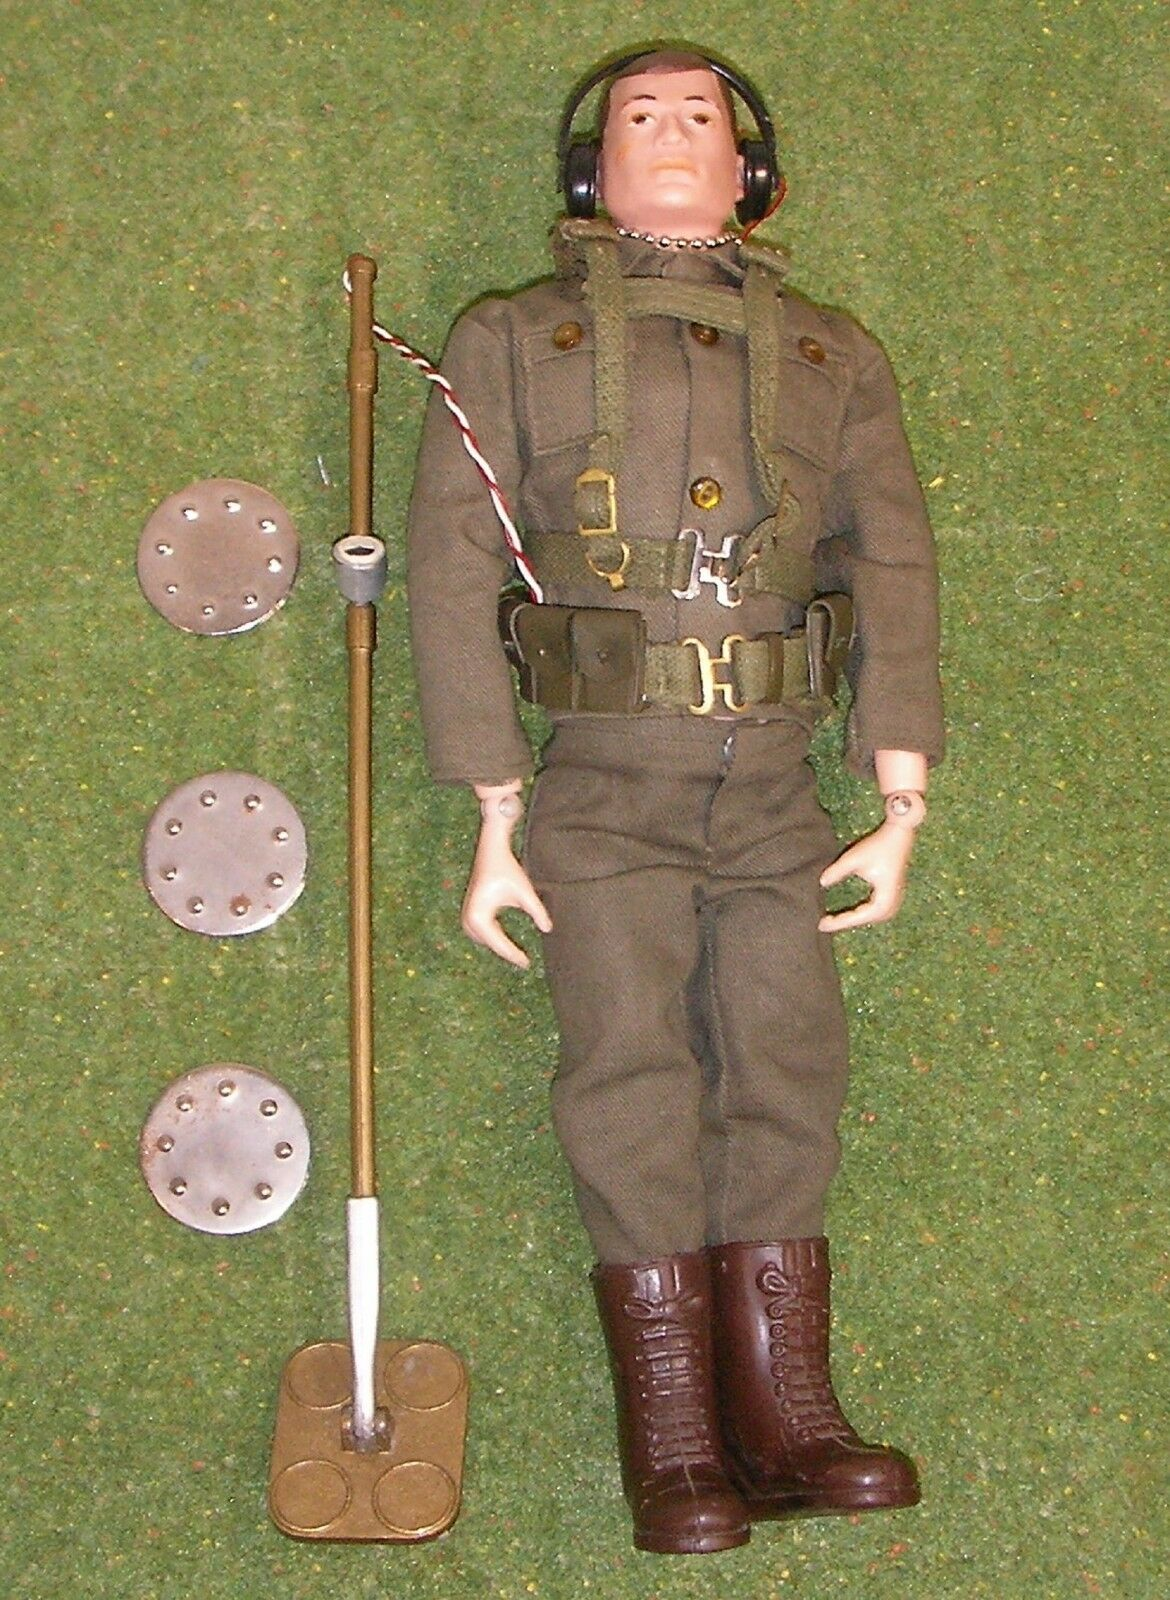 ORIGINAL VINTAGE ACTION MAN LOOSE MINE DETECTOR PAINTED HEAD 117